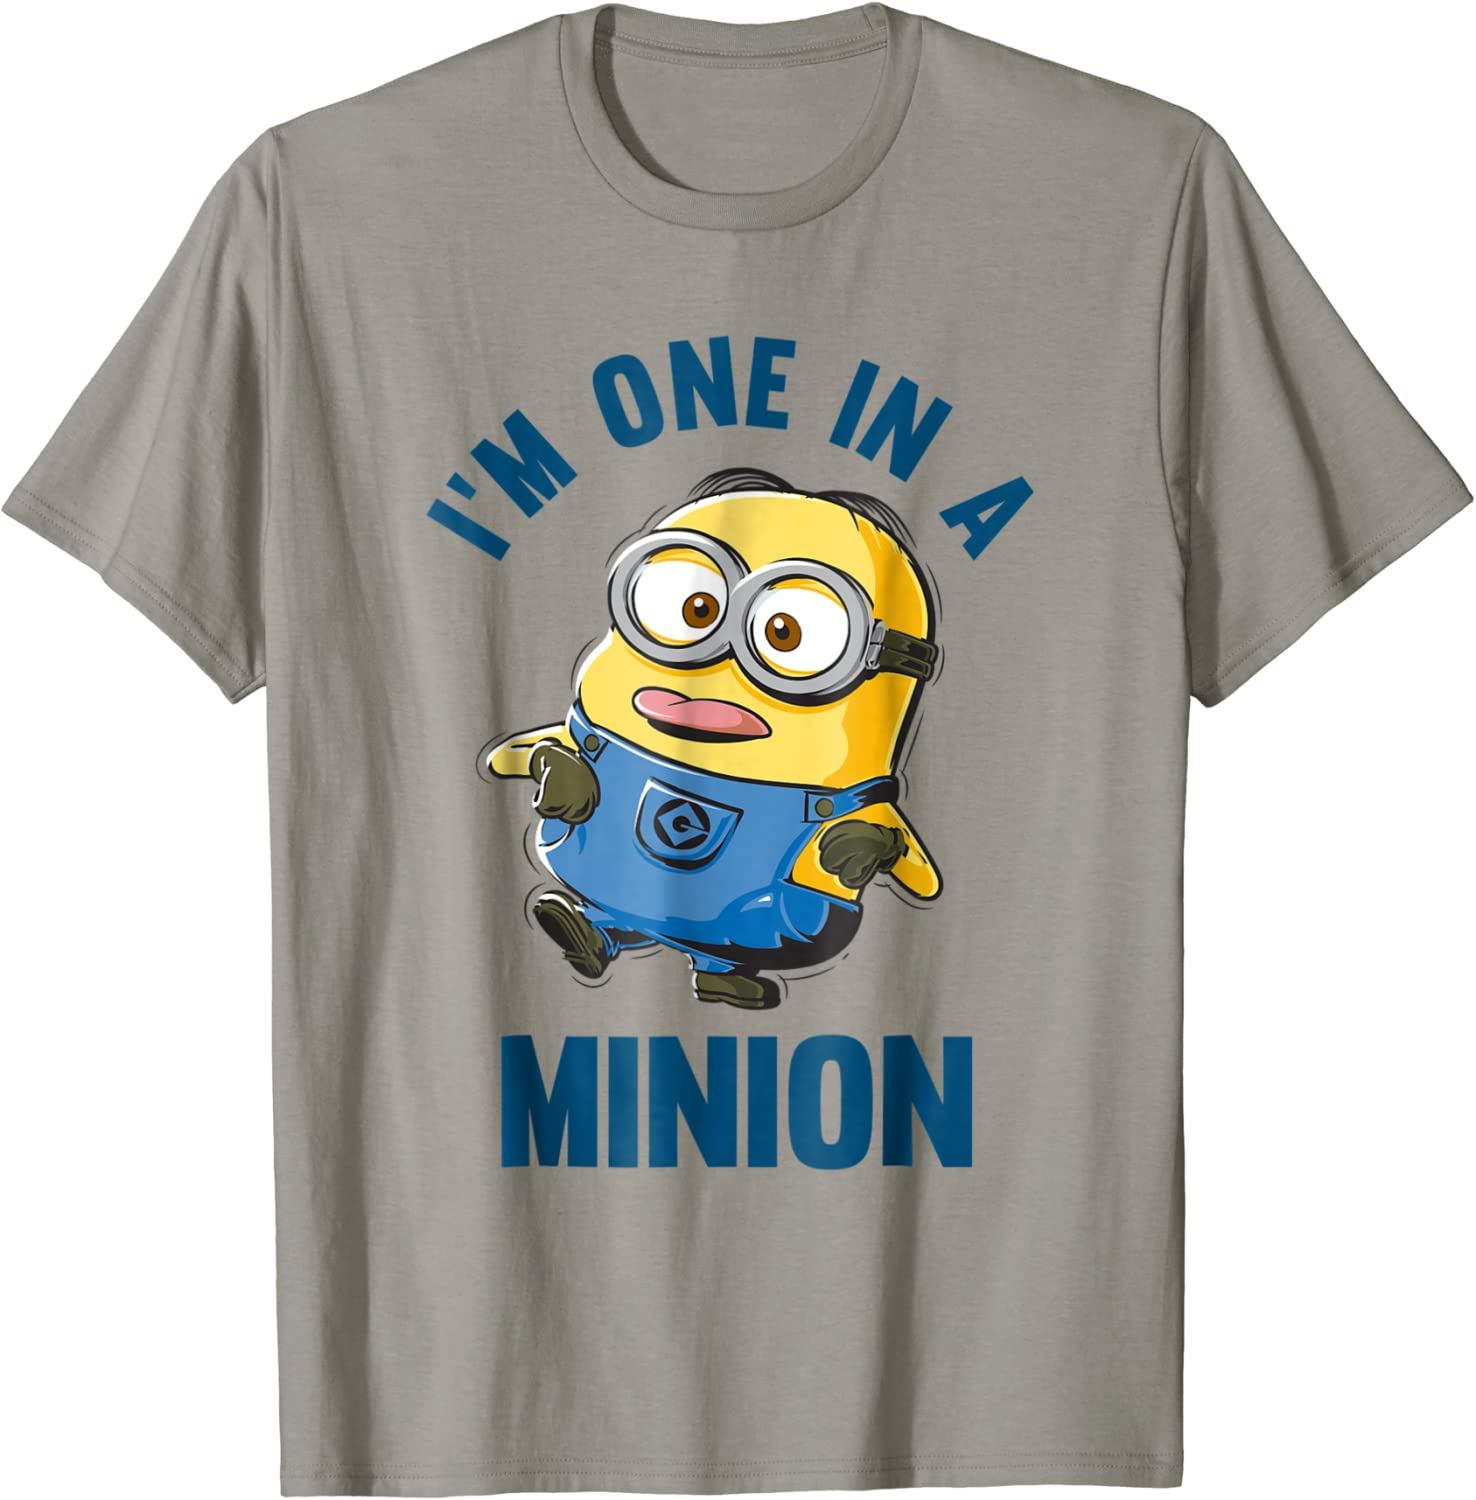 Minion T-Shirt for Boys or Girls Despicable Me Minions T Shirt Tee Shirts